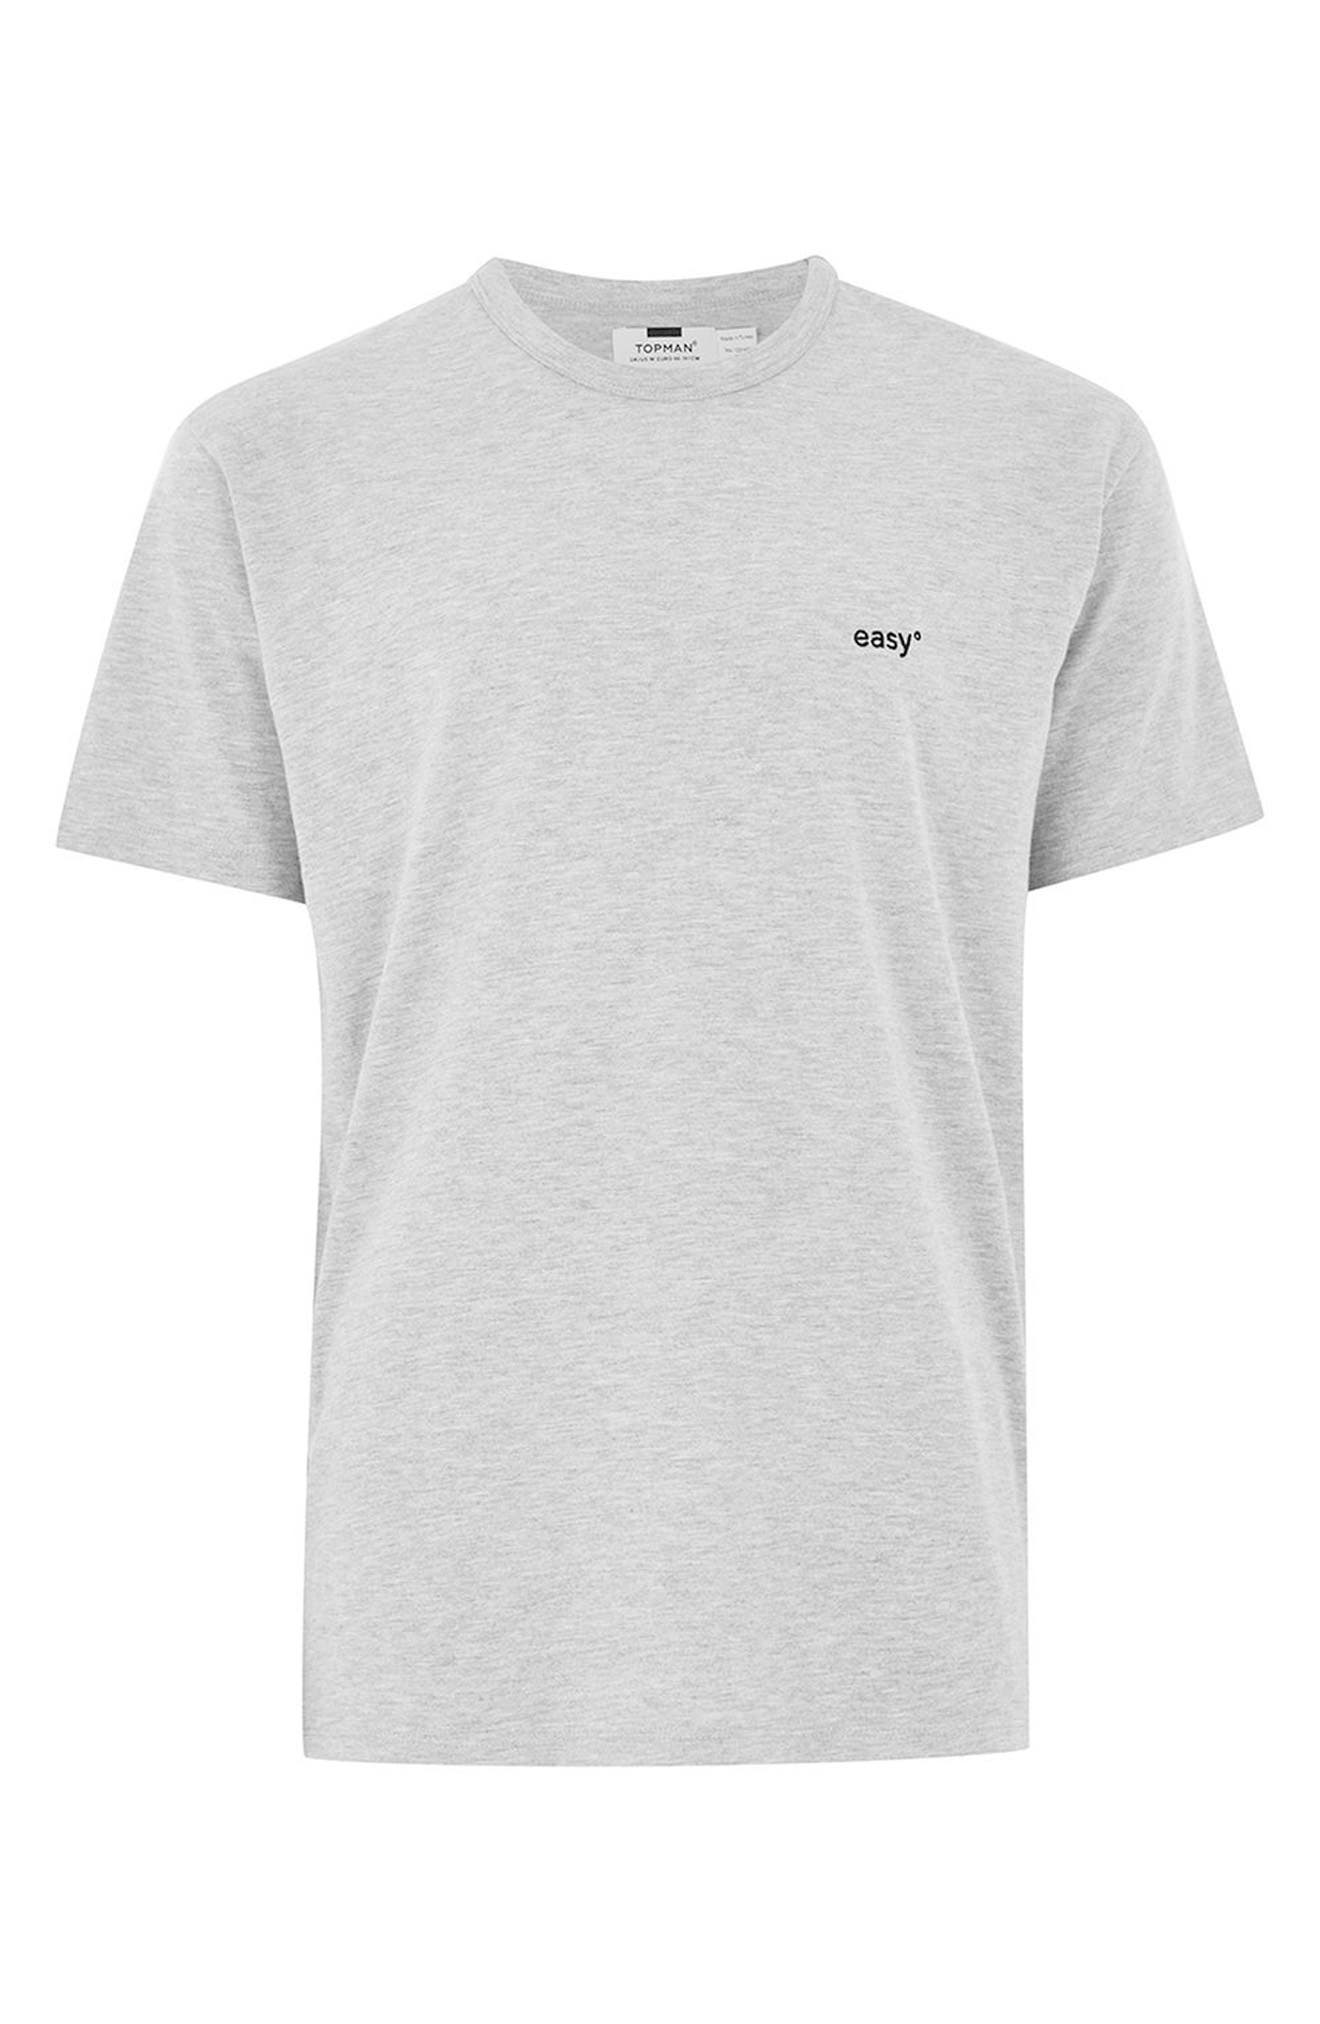 Oversize Embroidered Easy T-Shirt,                             Alternate thumbnail 4, color,                             Grey